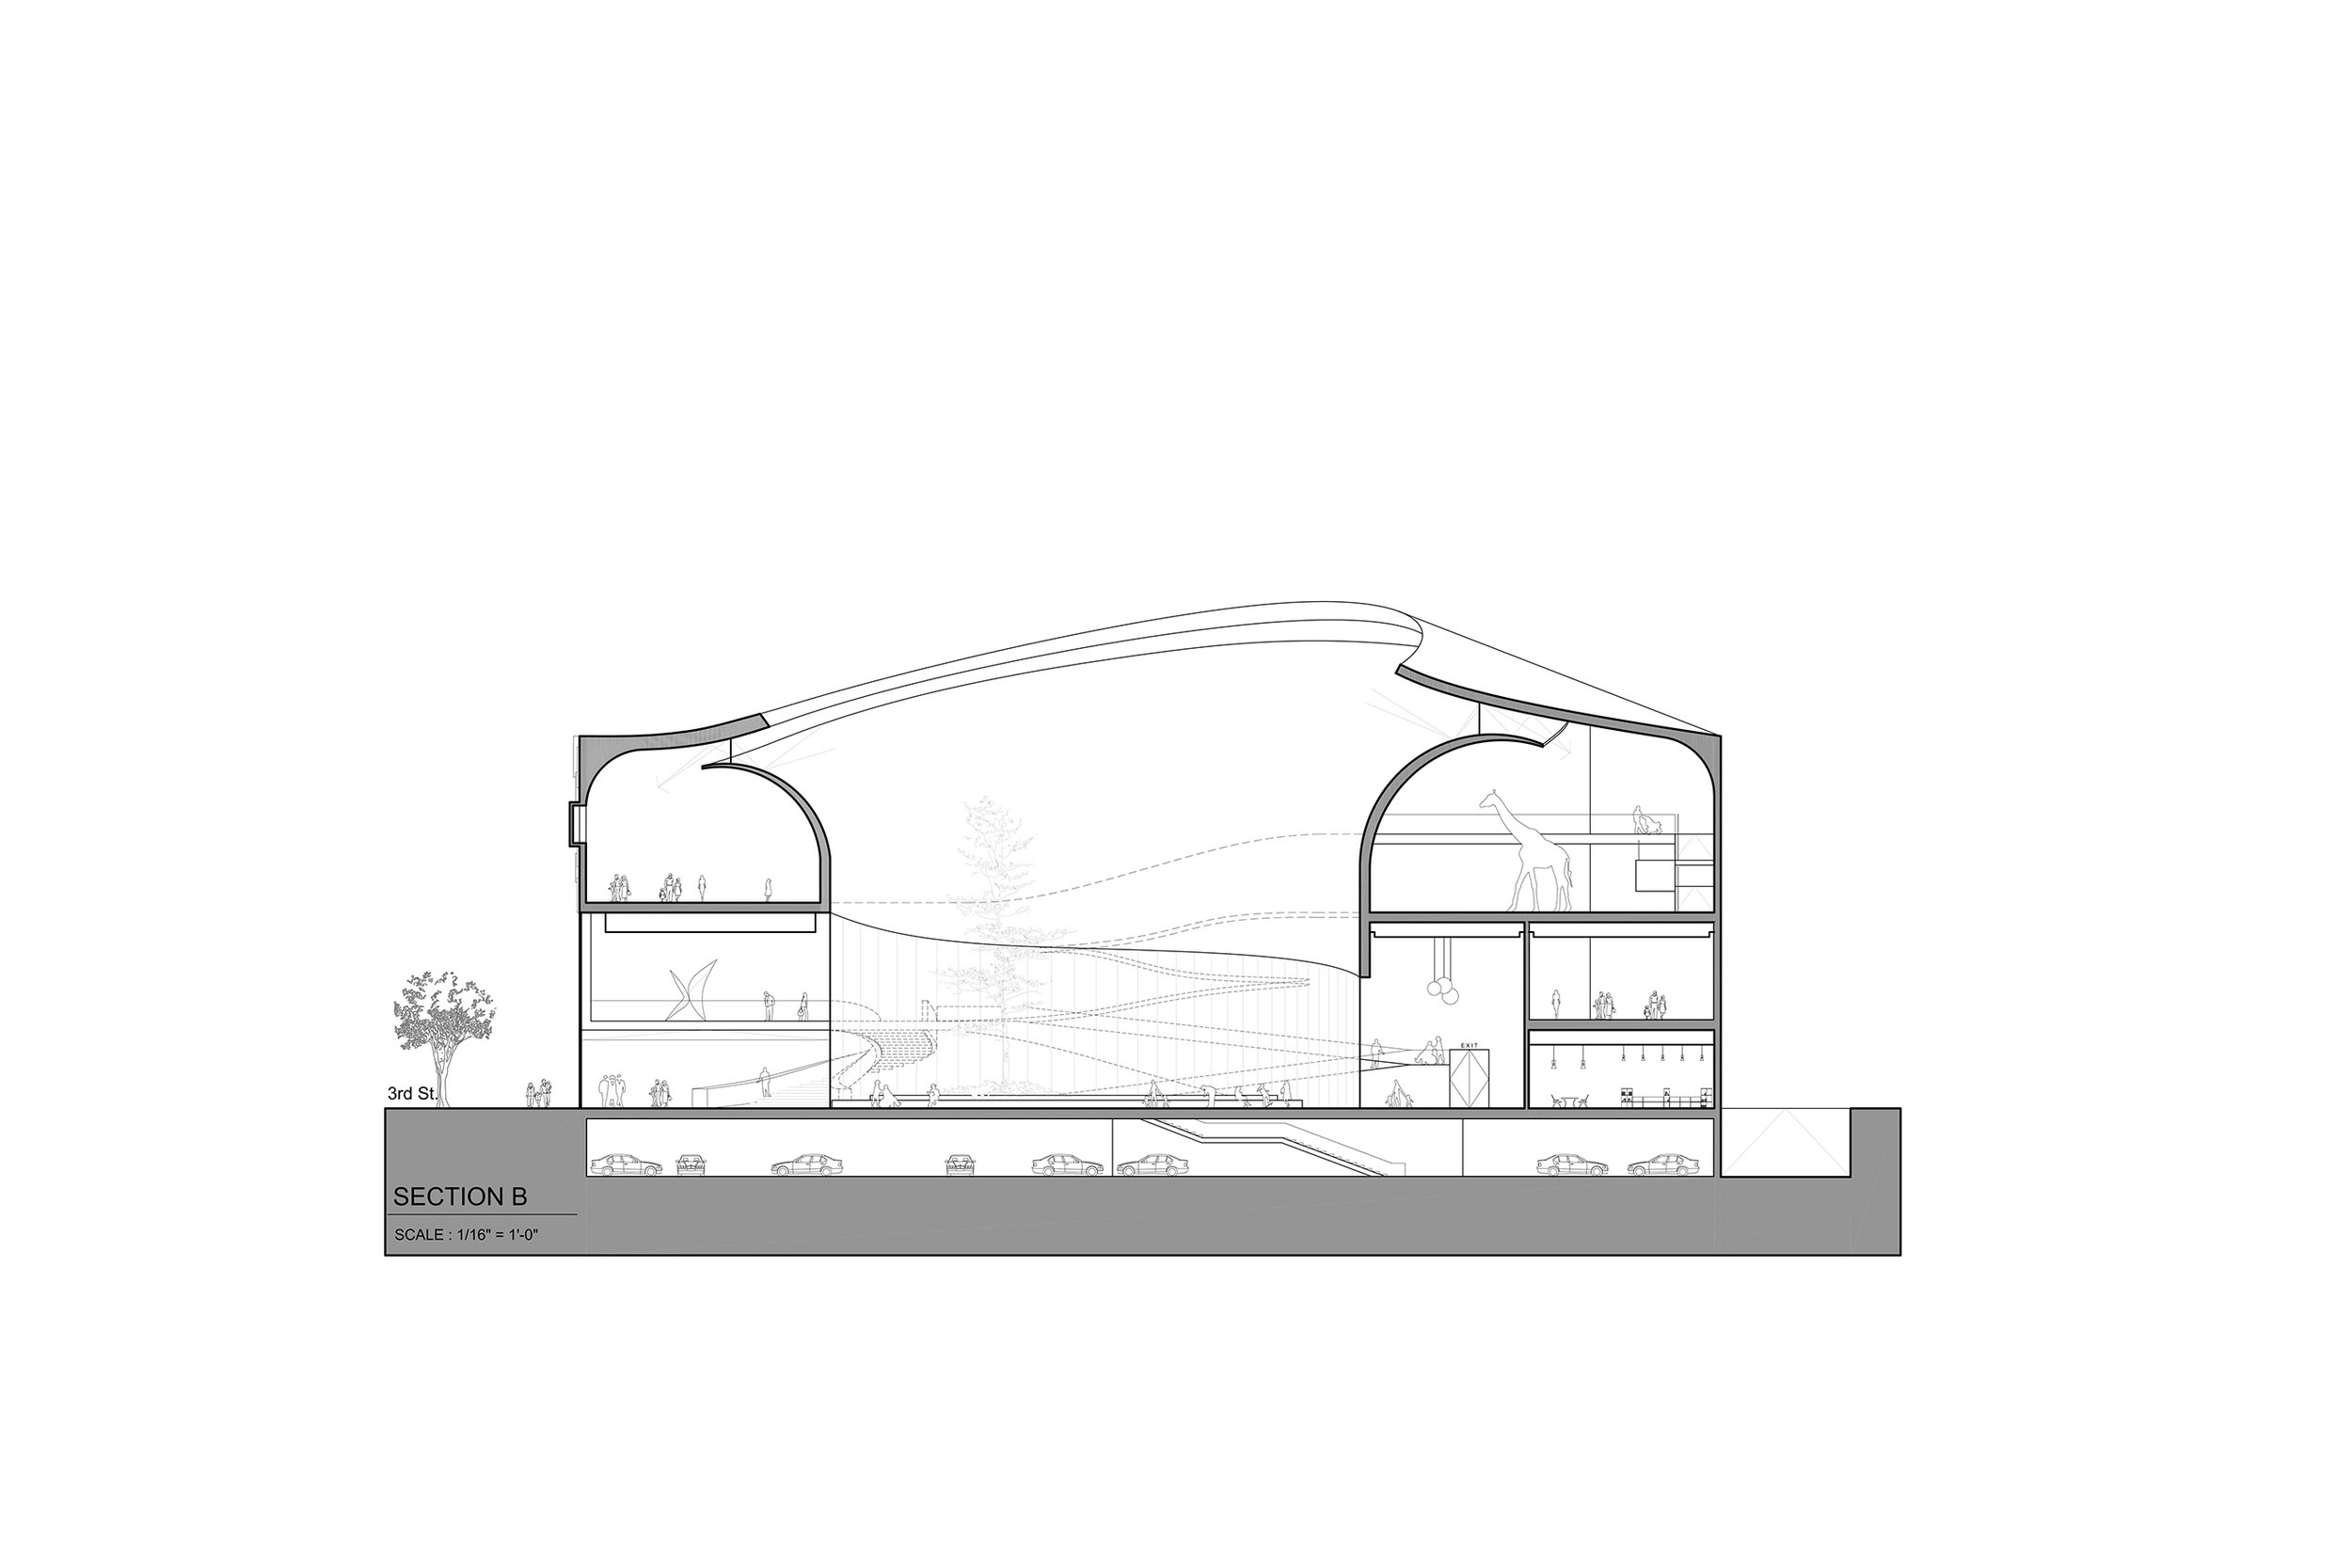 03 Hadilou Architecture_Section B LCM.jpg